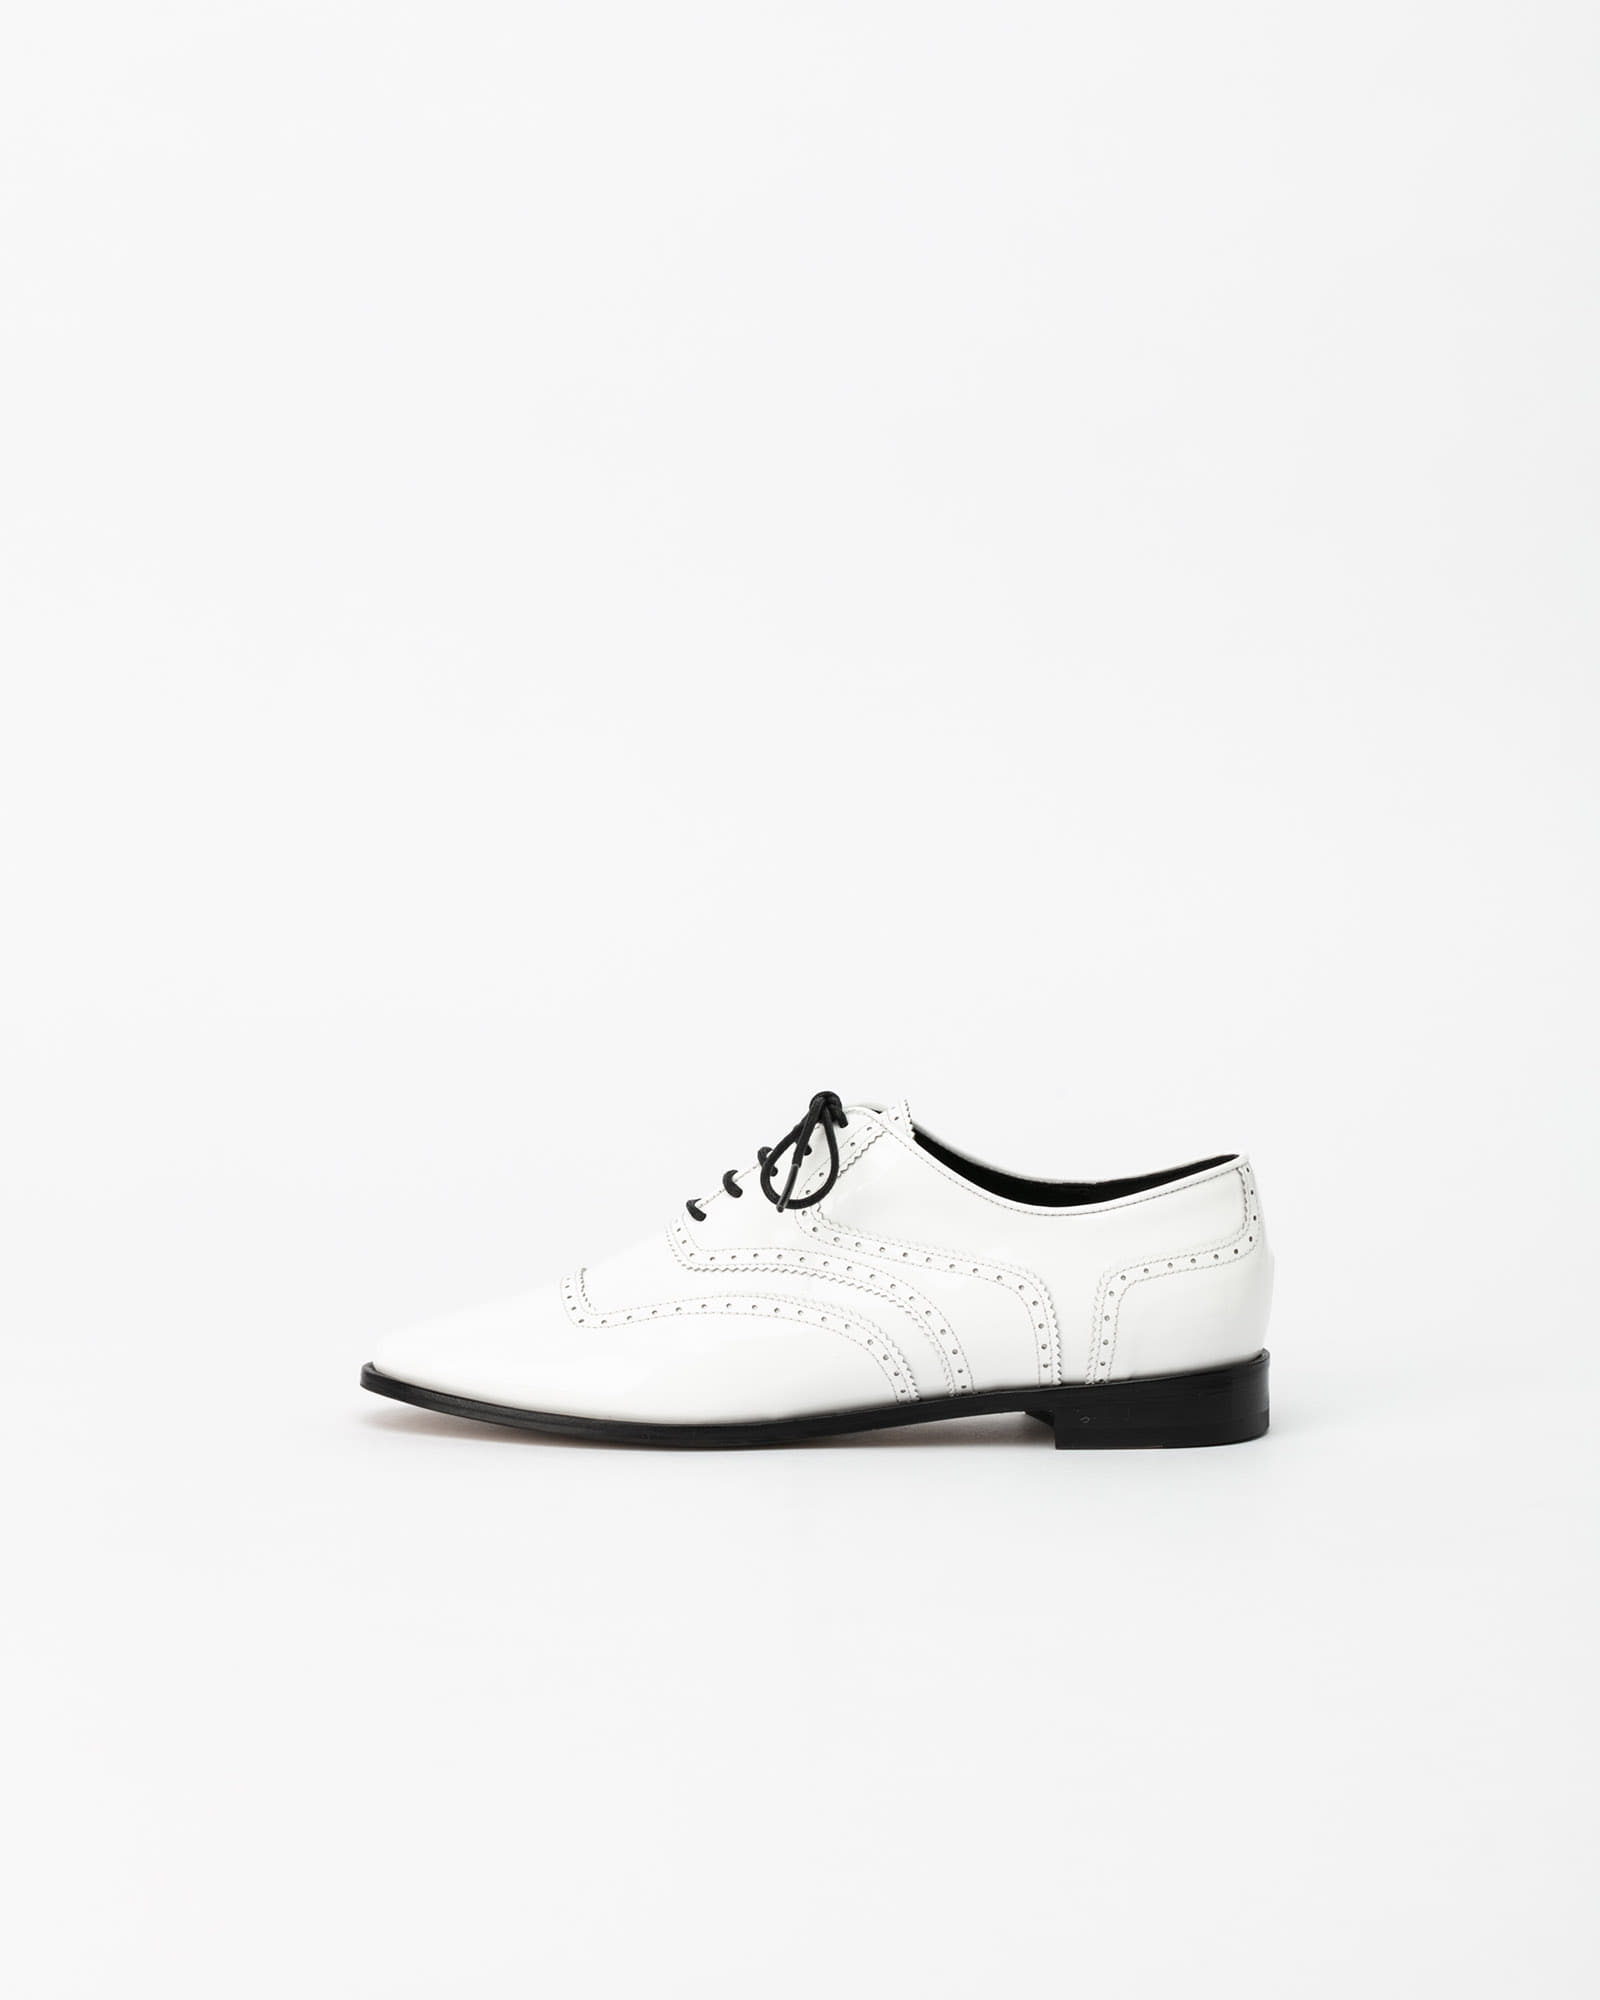 Celsius Oxford Shoes in White Patent